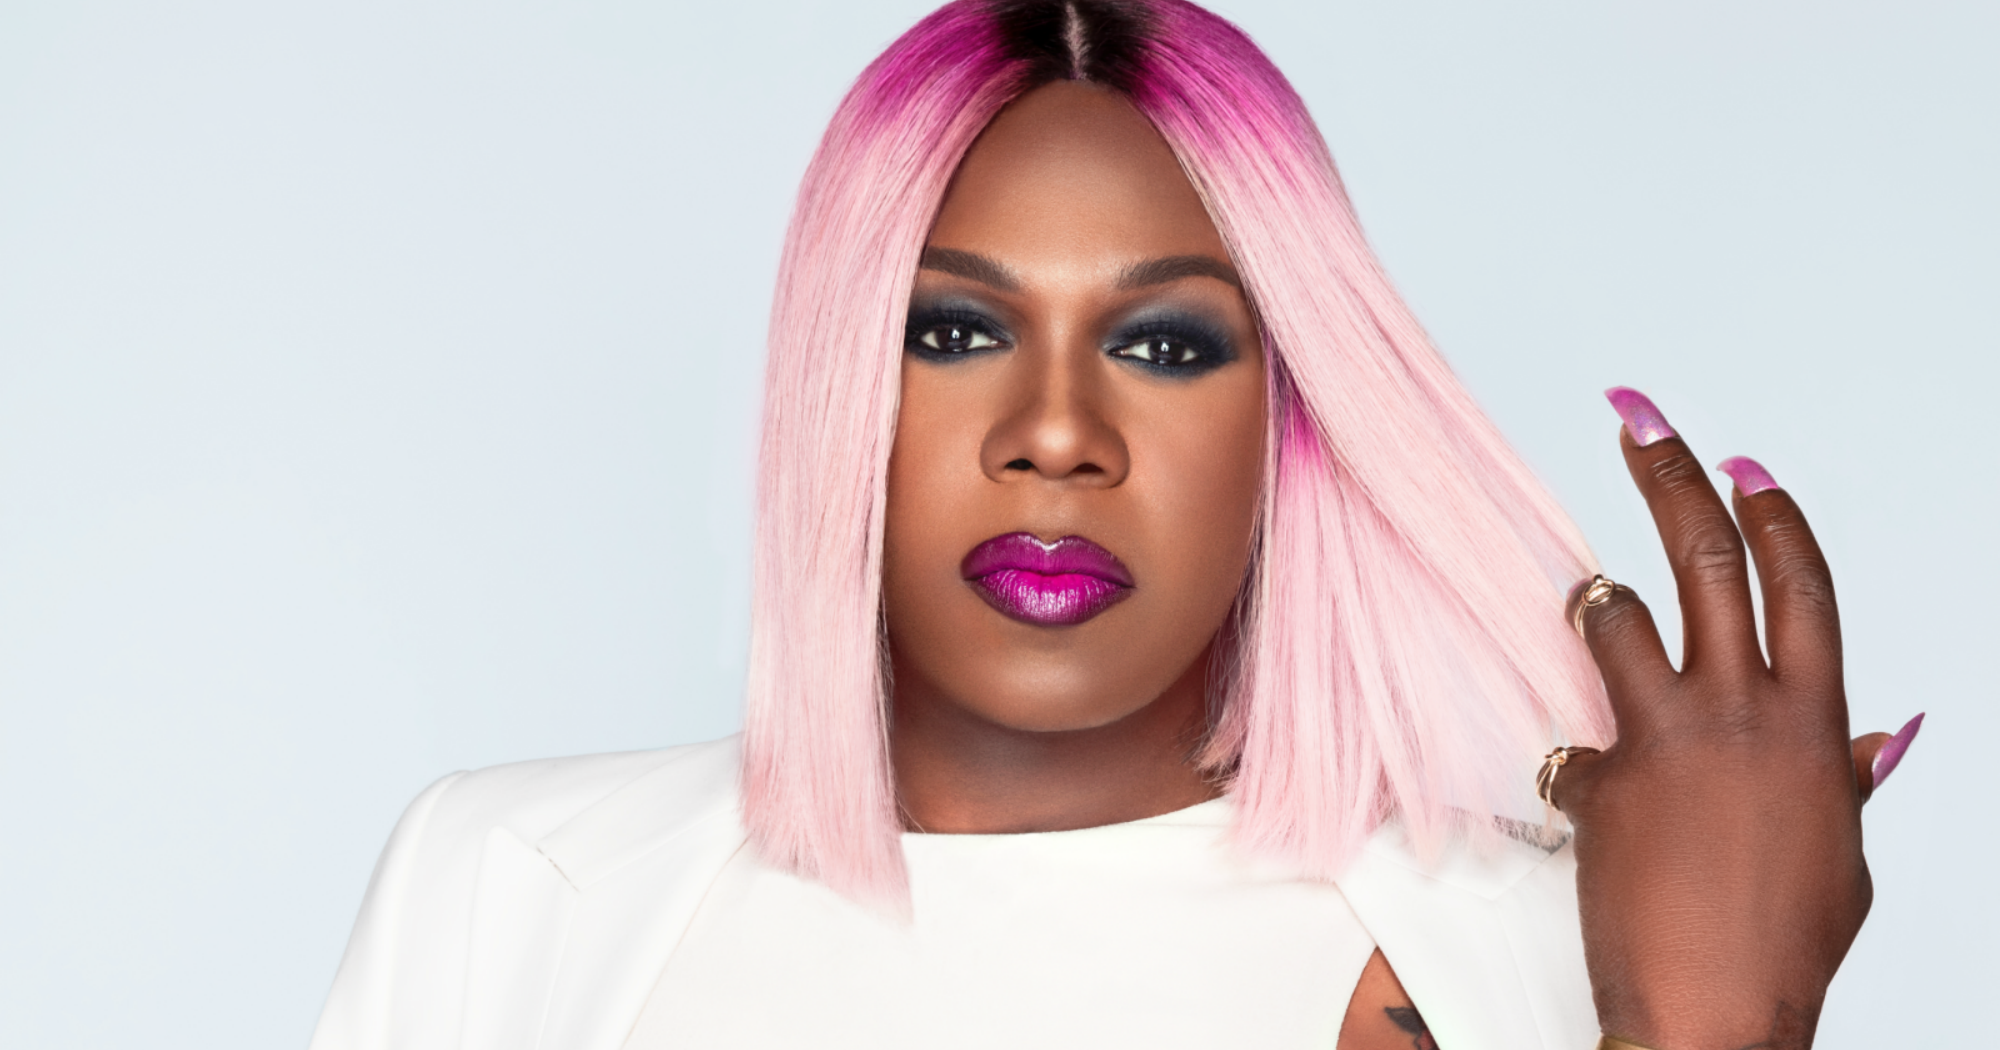 Big Freedia: The Bounce Star Who Came to Slay in Beyoncés